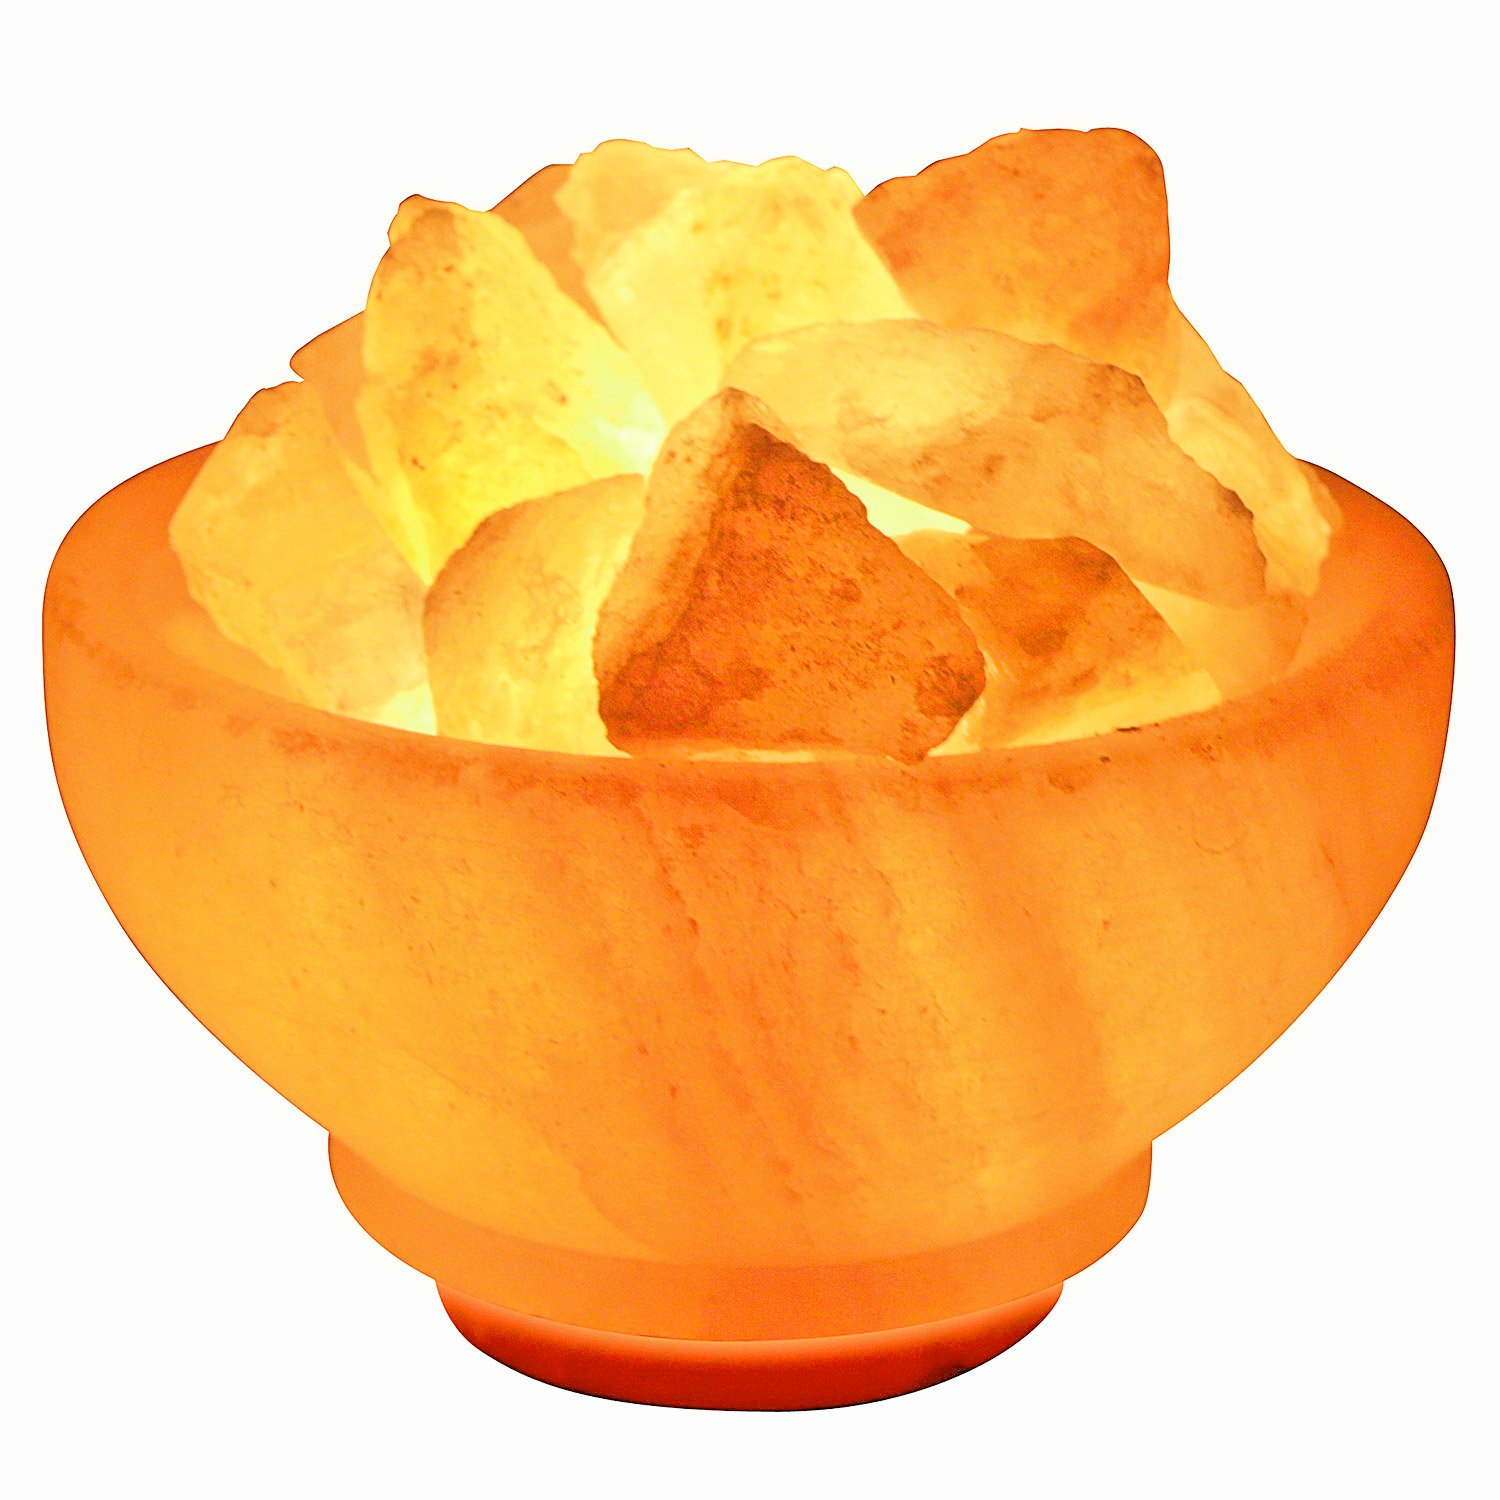 Crystal Allies Gallery CA SLSFB-S Natural Himalayan Salt Fire Bowl Lamp with Rough Salt Chunks & Dimmable Switch, 6''